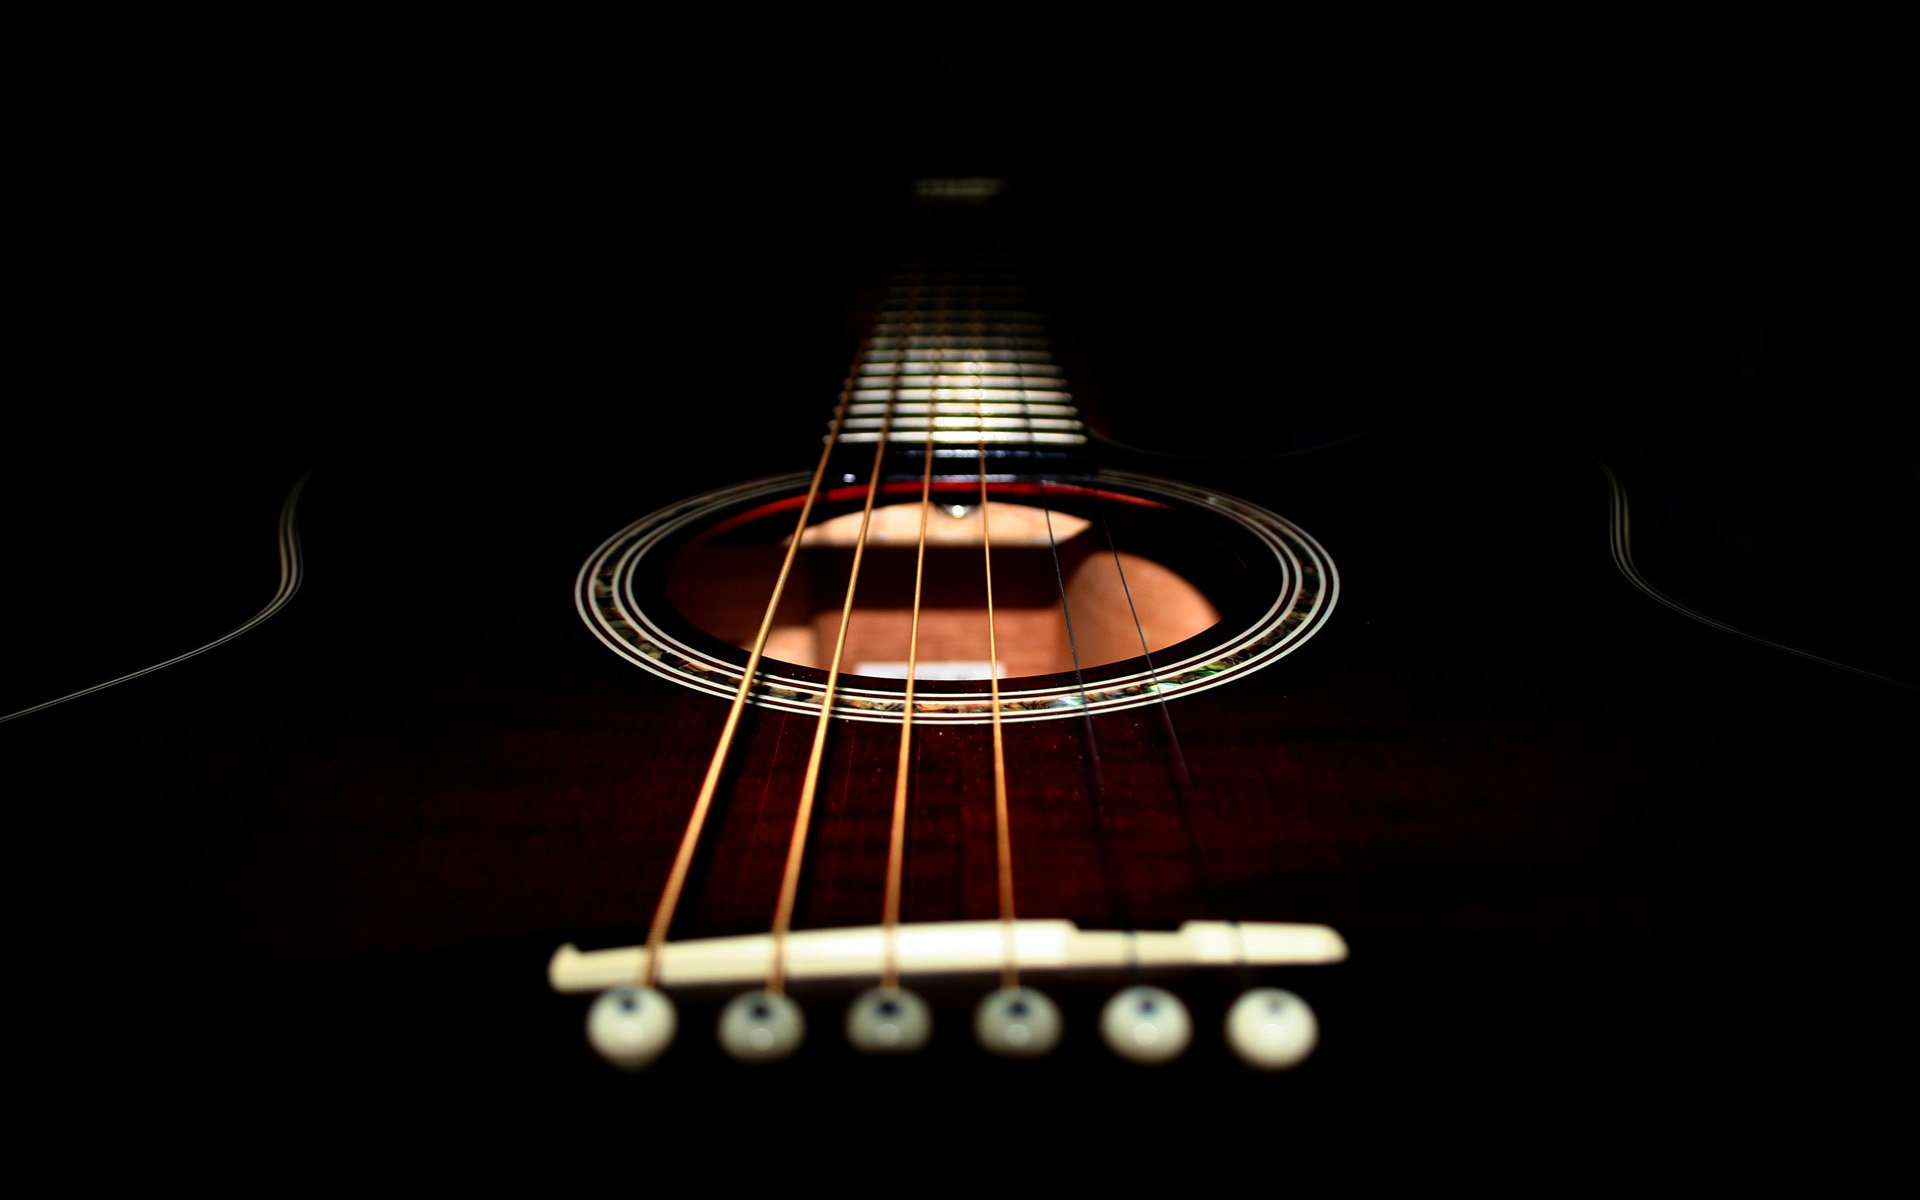 Music - Guitar  Black Wallpaper